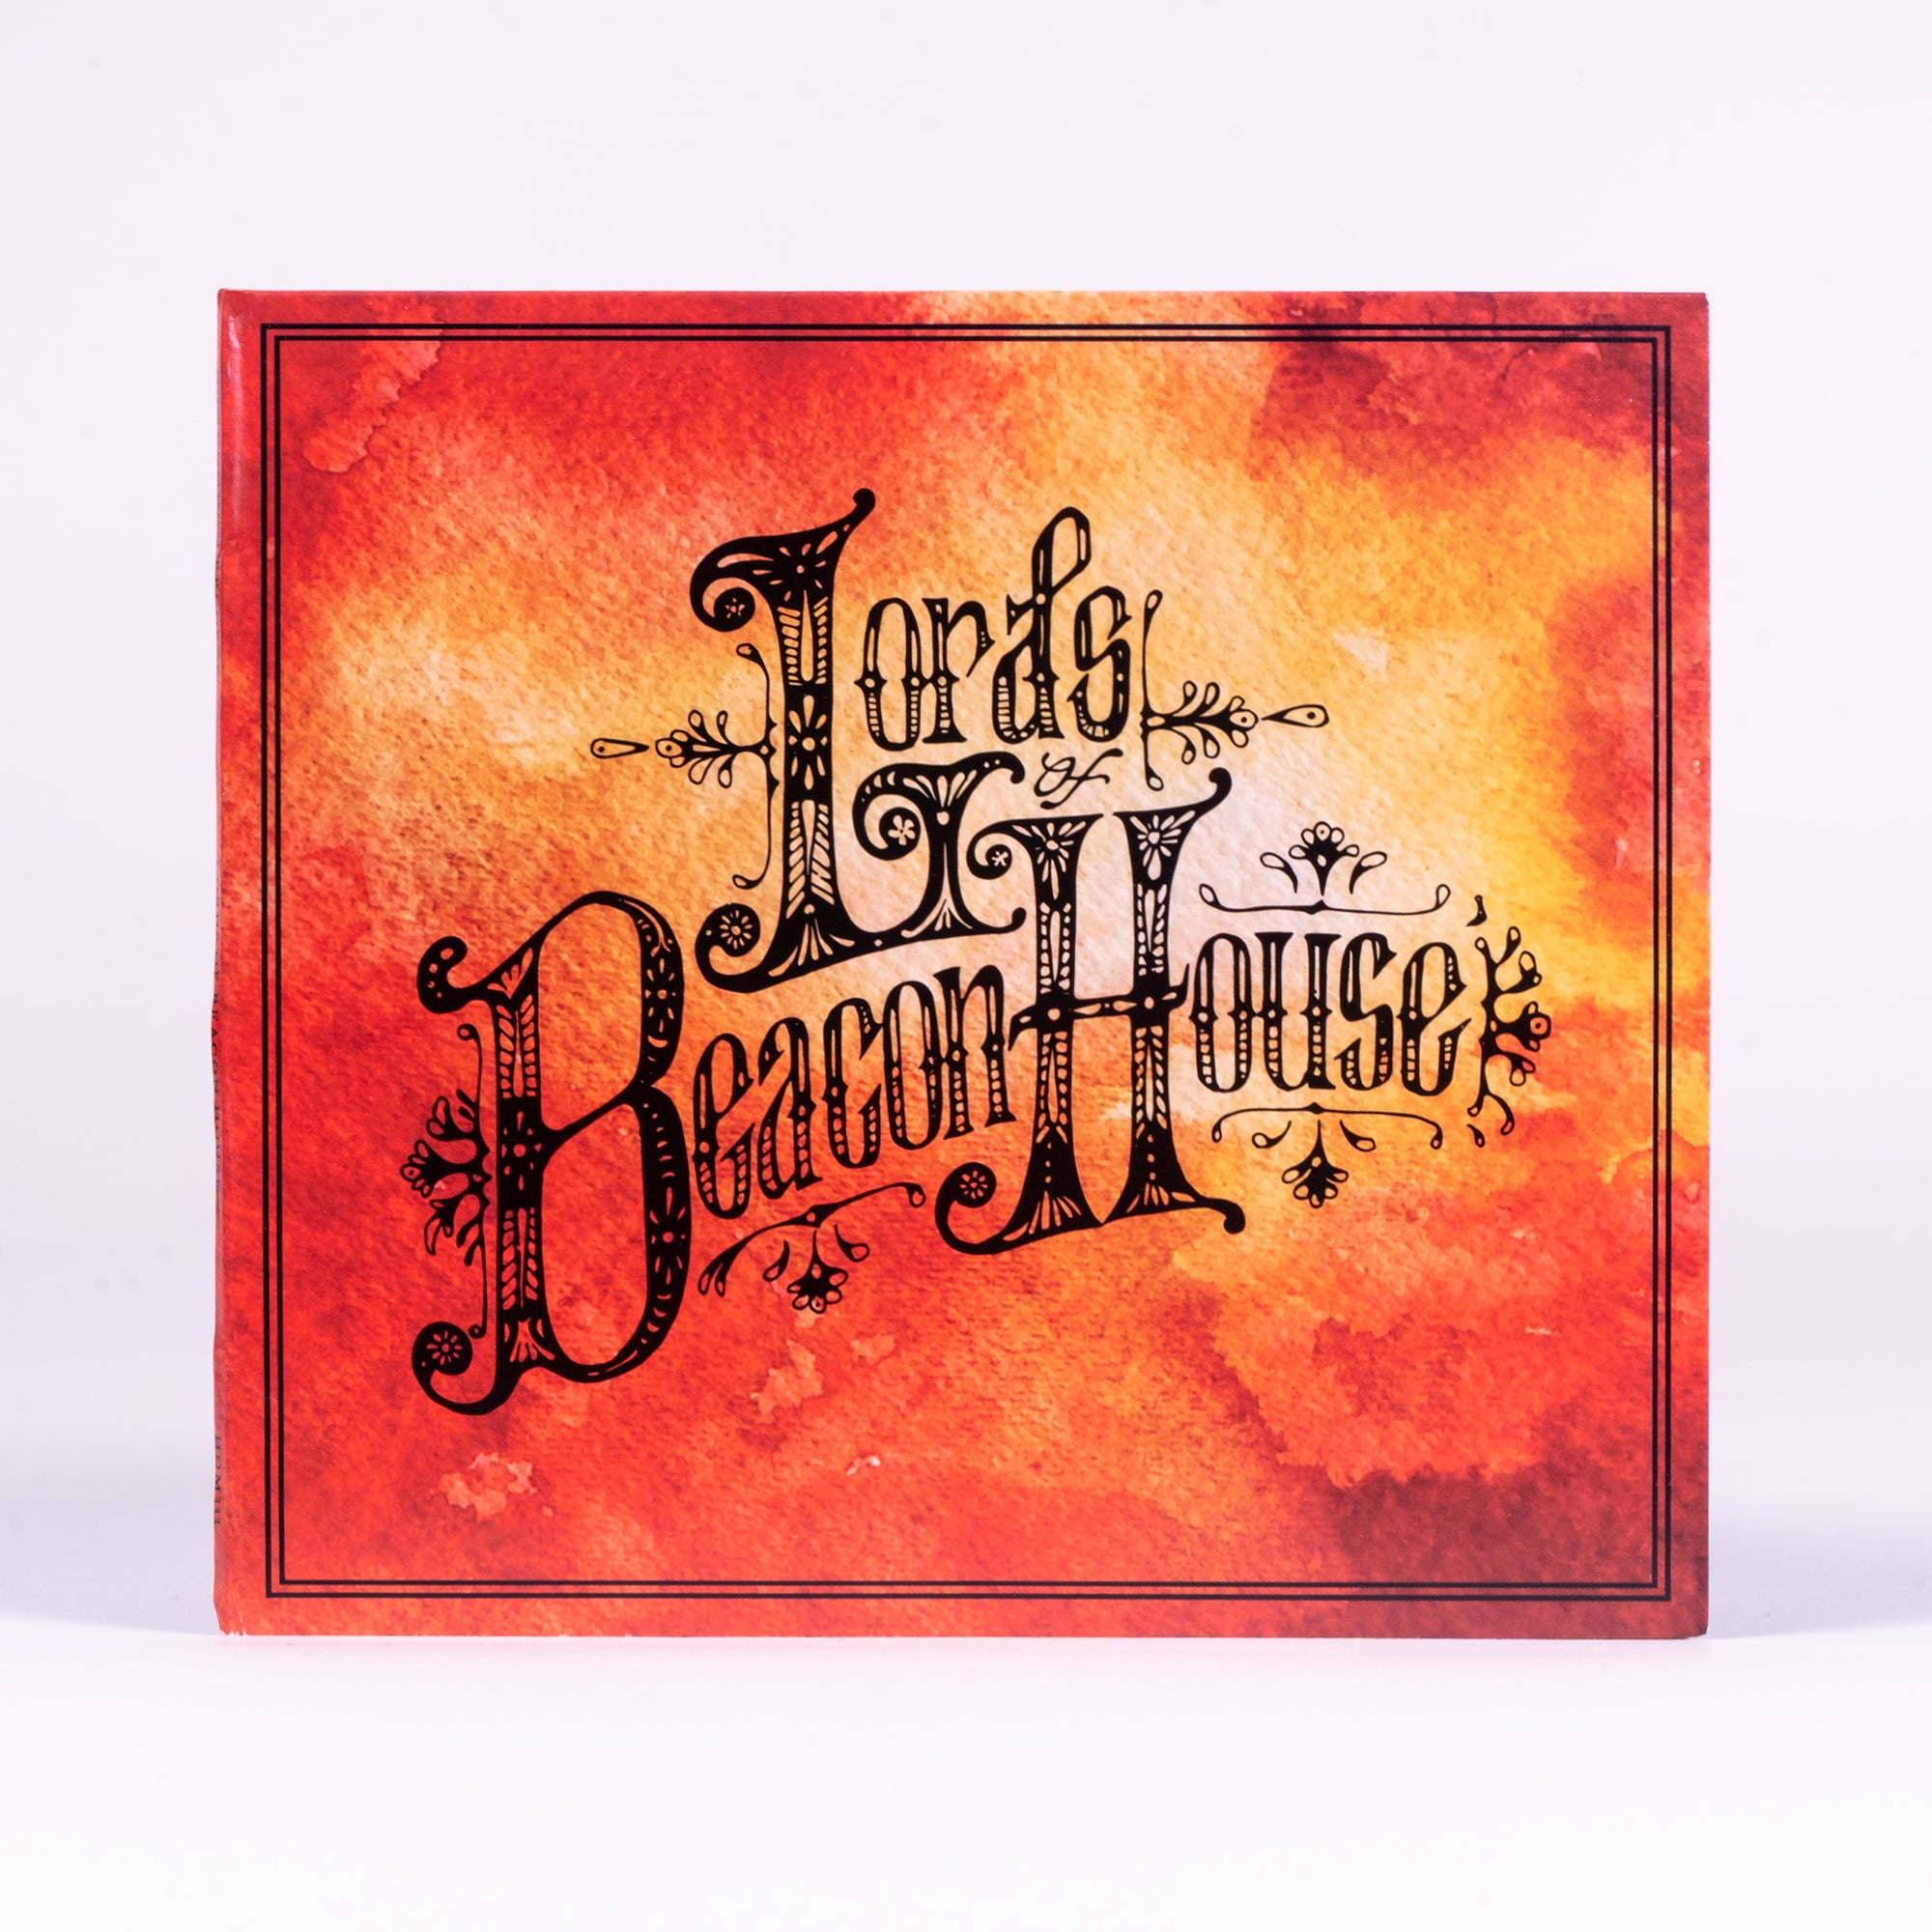 HHH333 - Lords of Beacon House - LP / CD / Digital